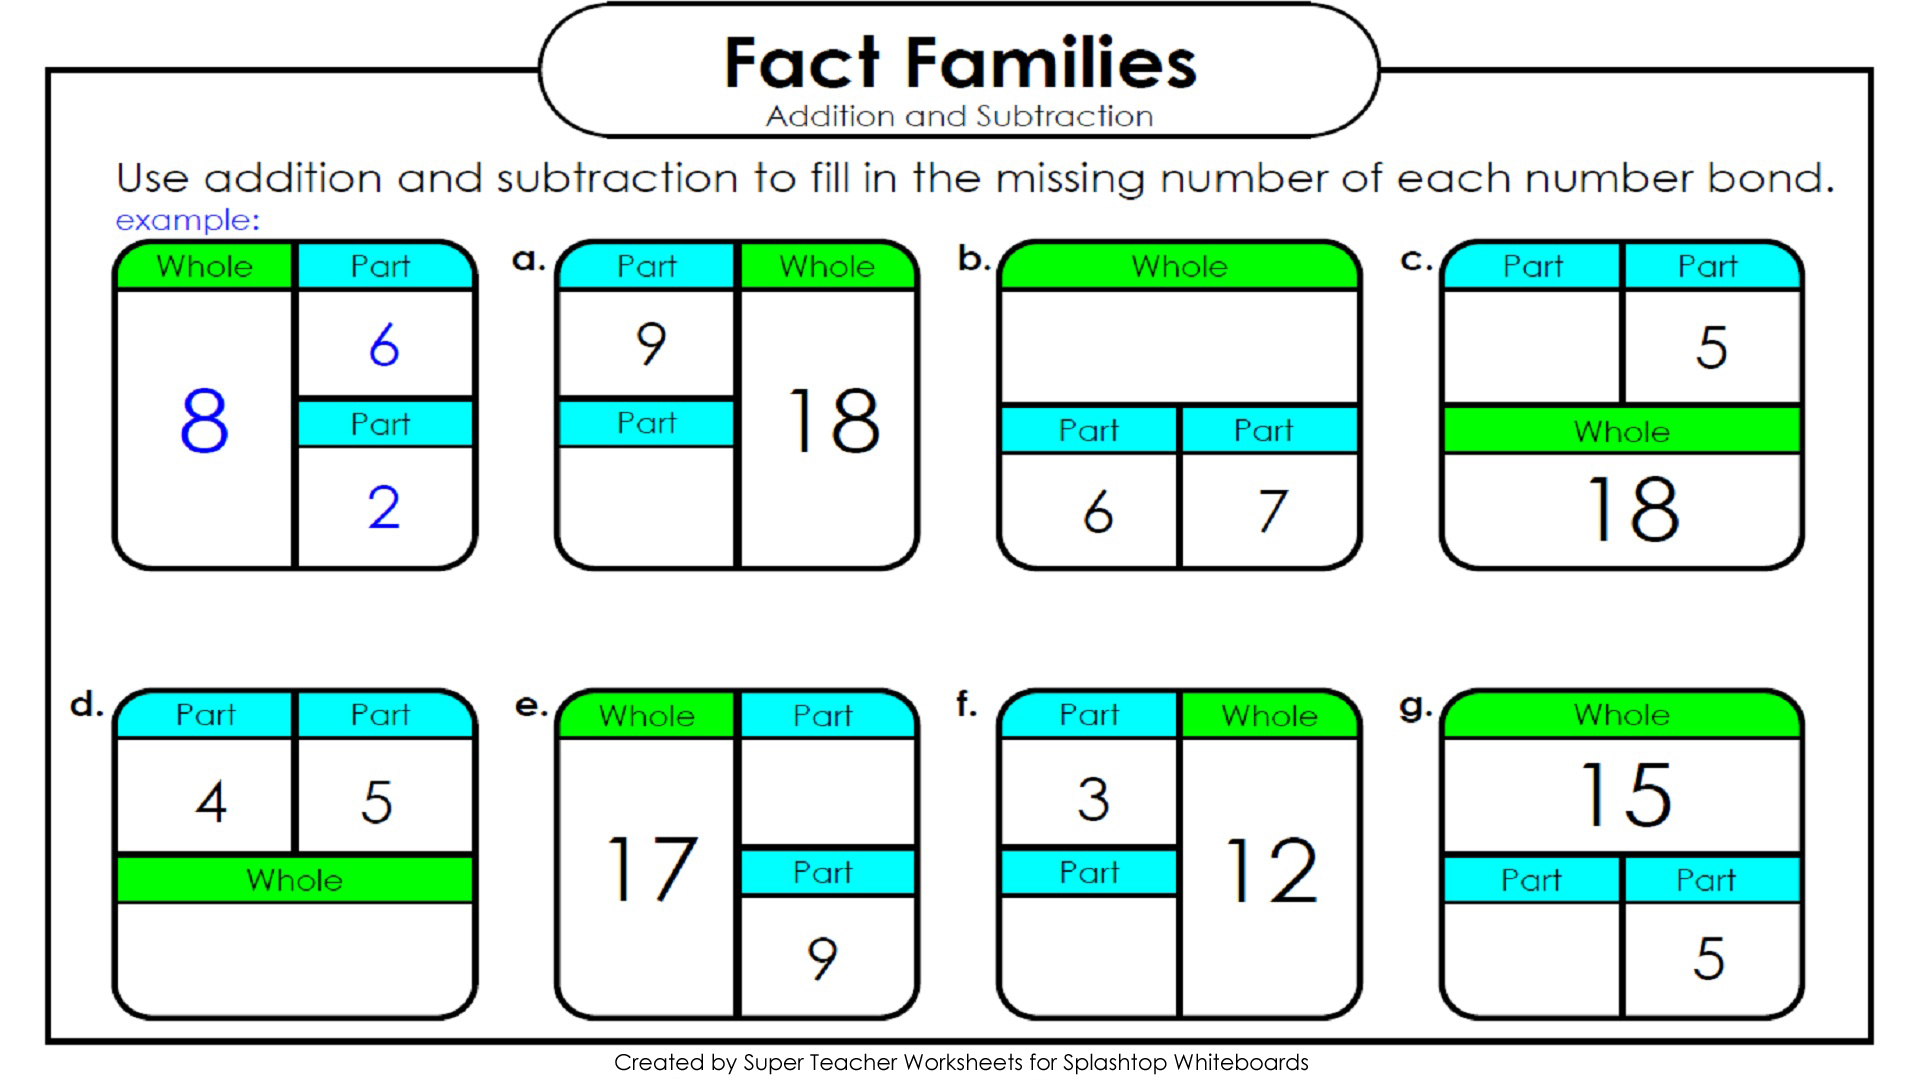 Worksheet 12241584 Addition and Subtraction Fact Worksheets – Printable Addition Facts Worksheet